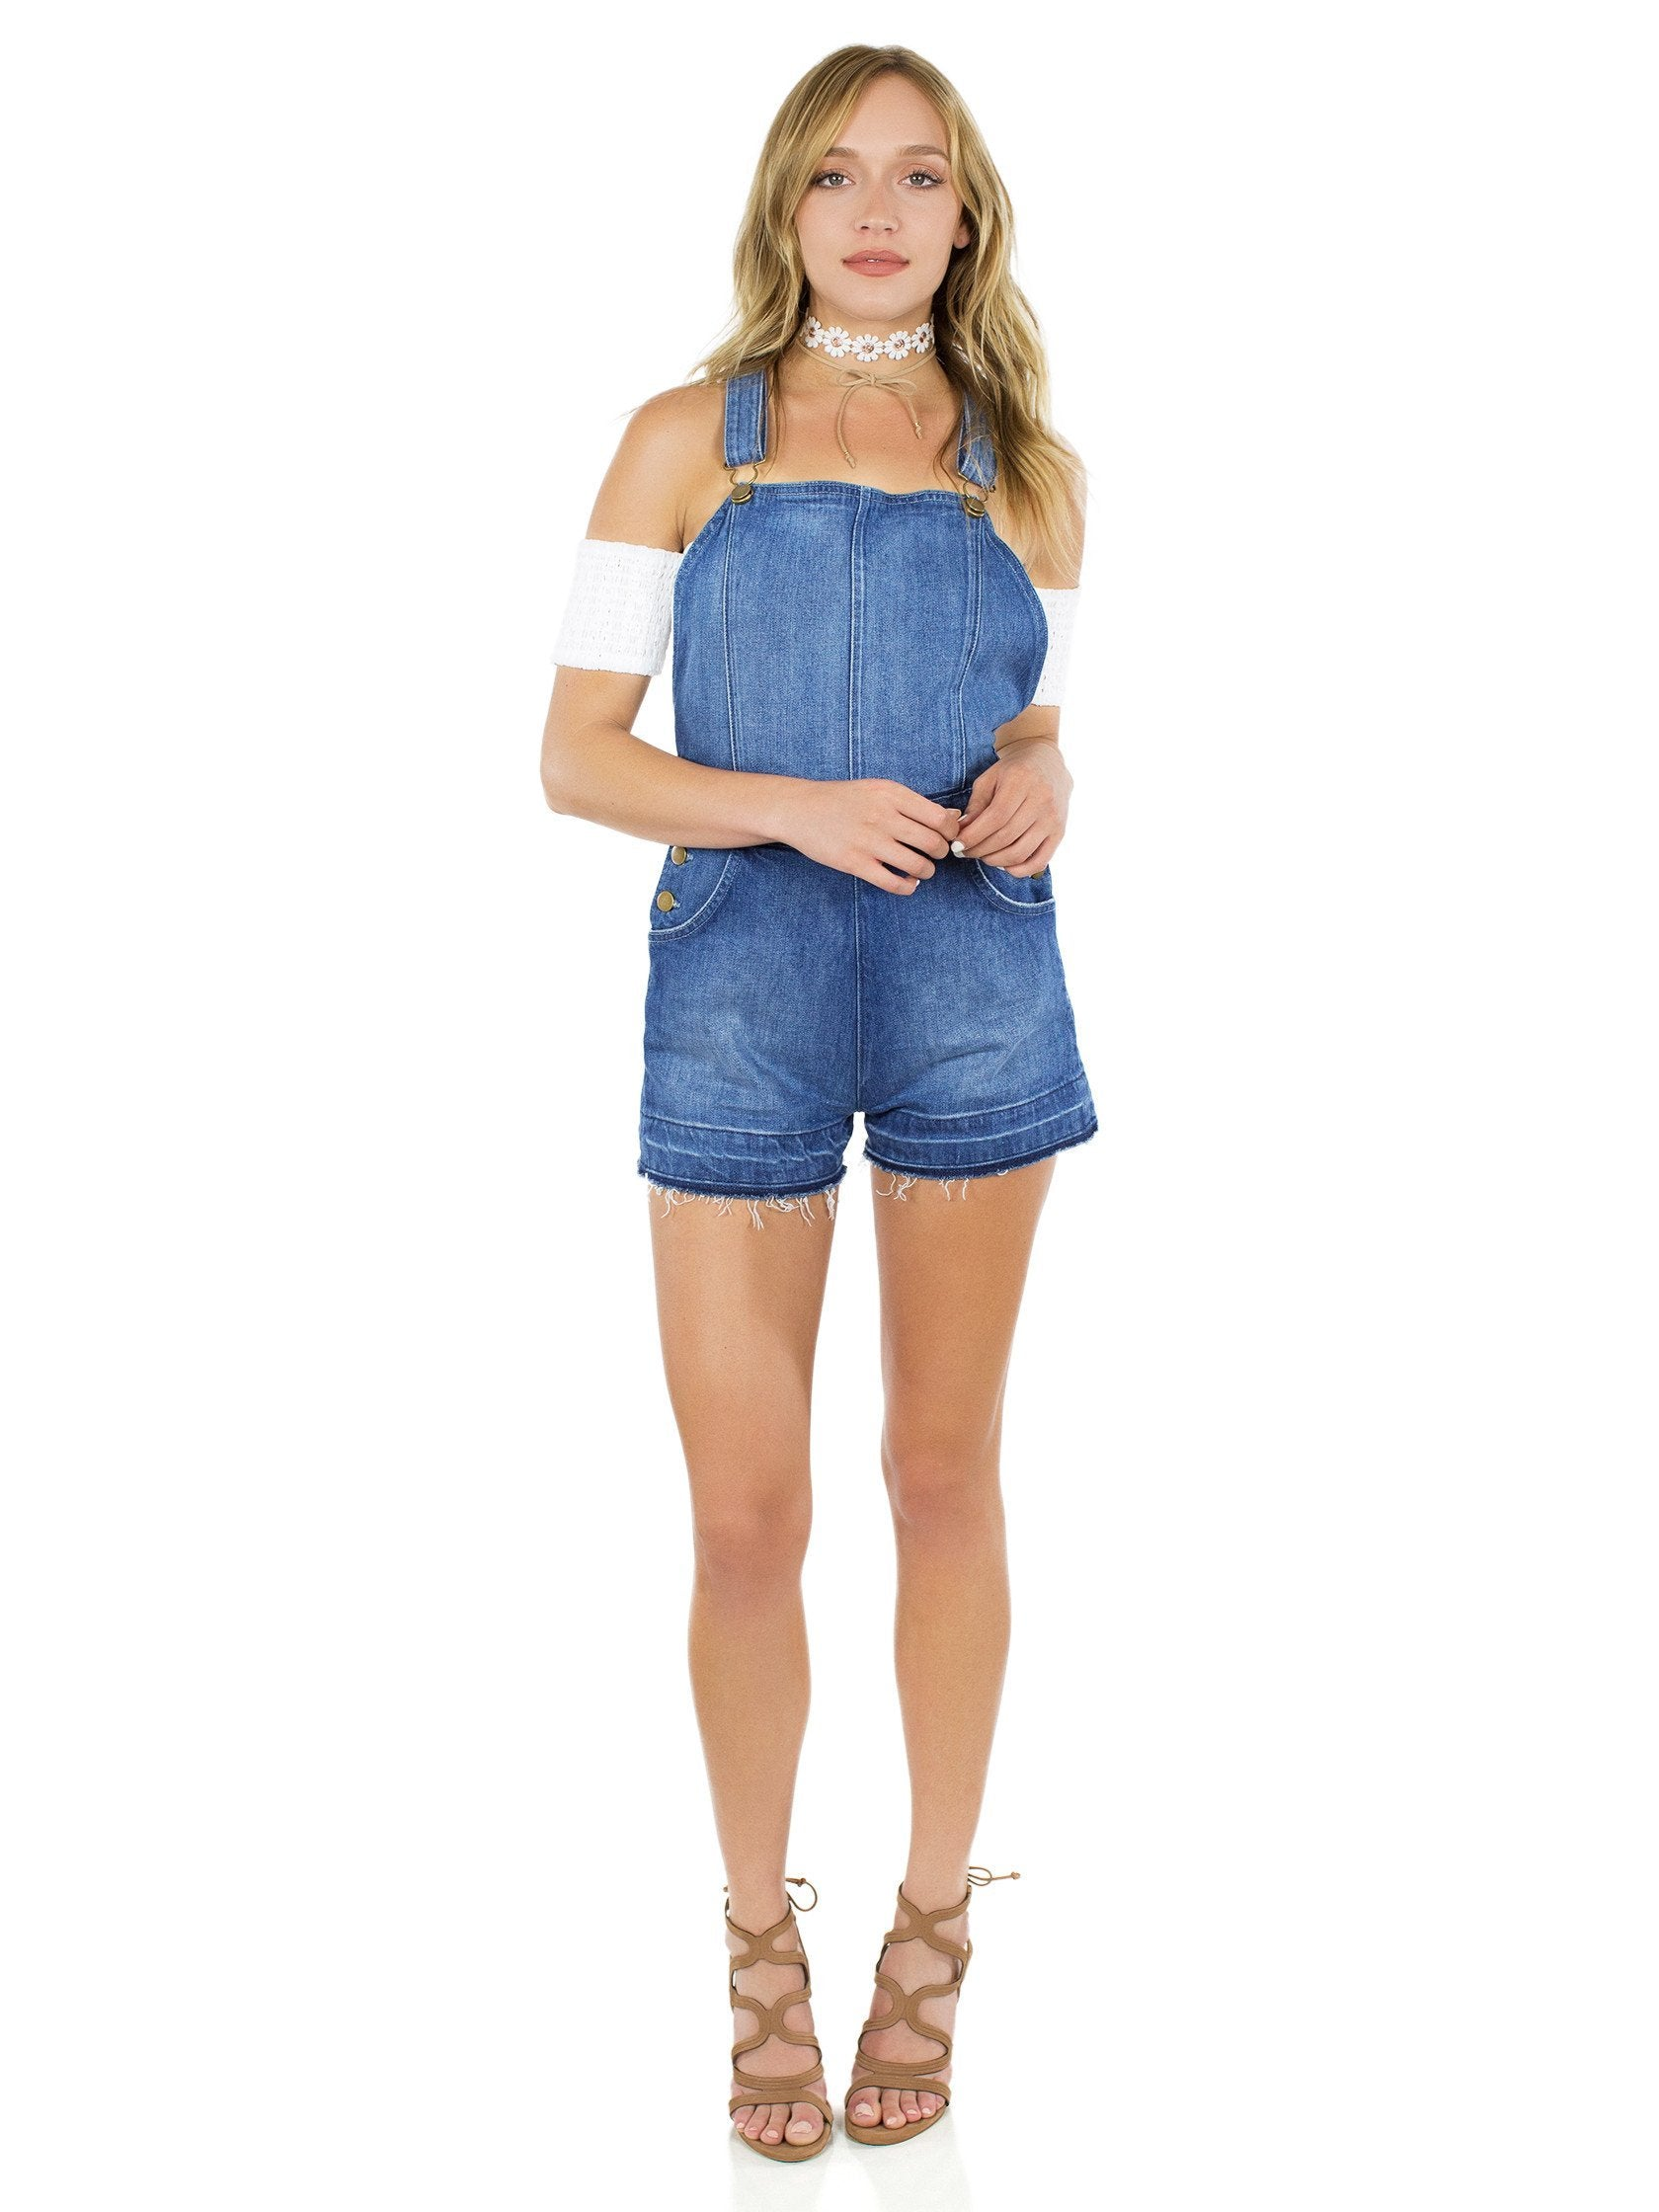 Women outfit in a romper rental from The Jetset Diaries called Tash Overall Romper